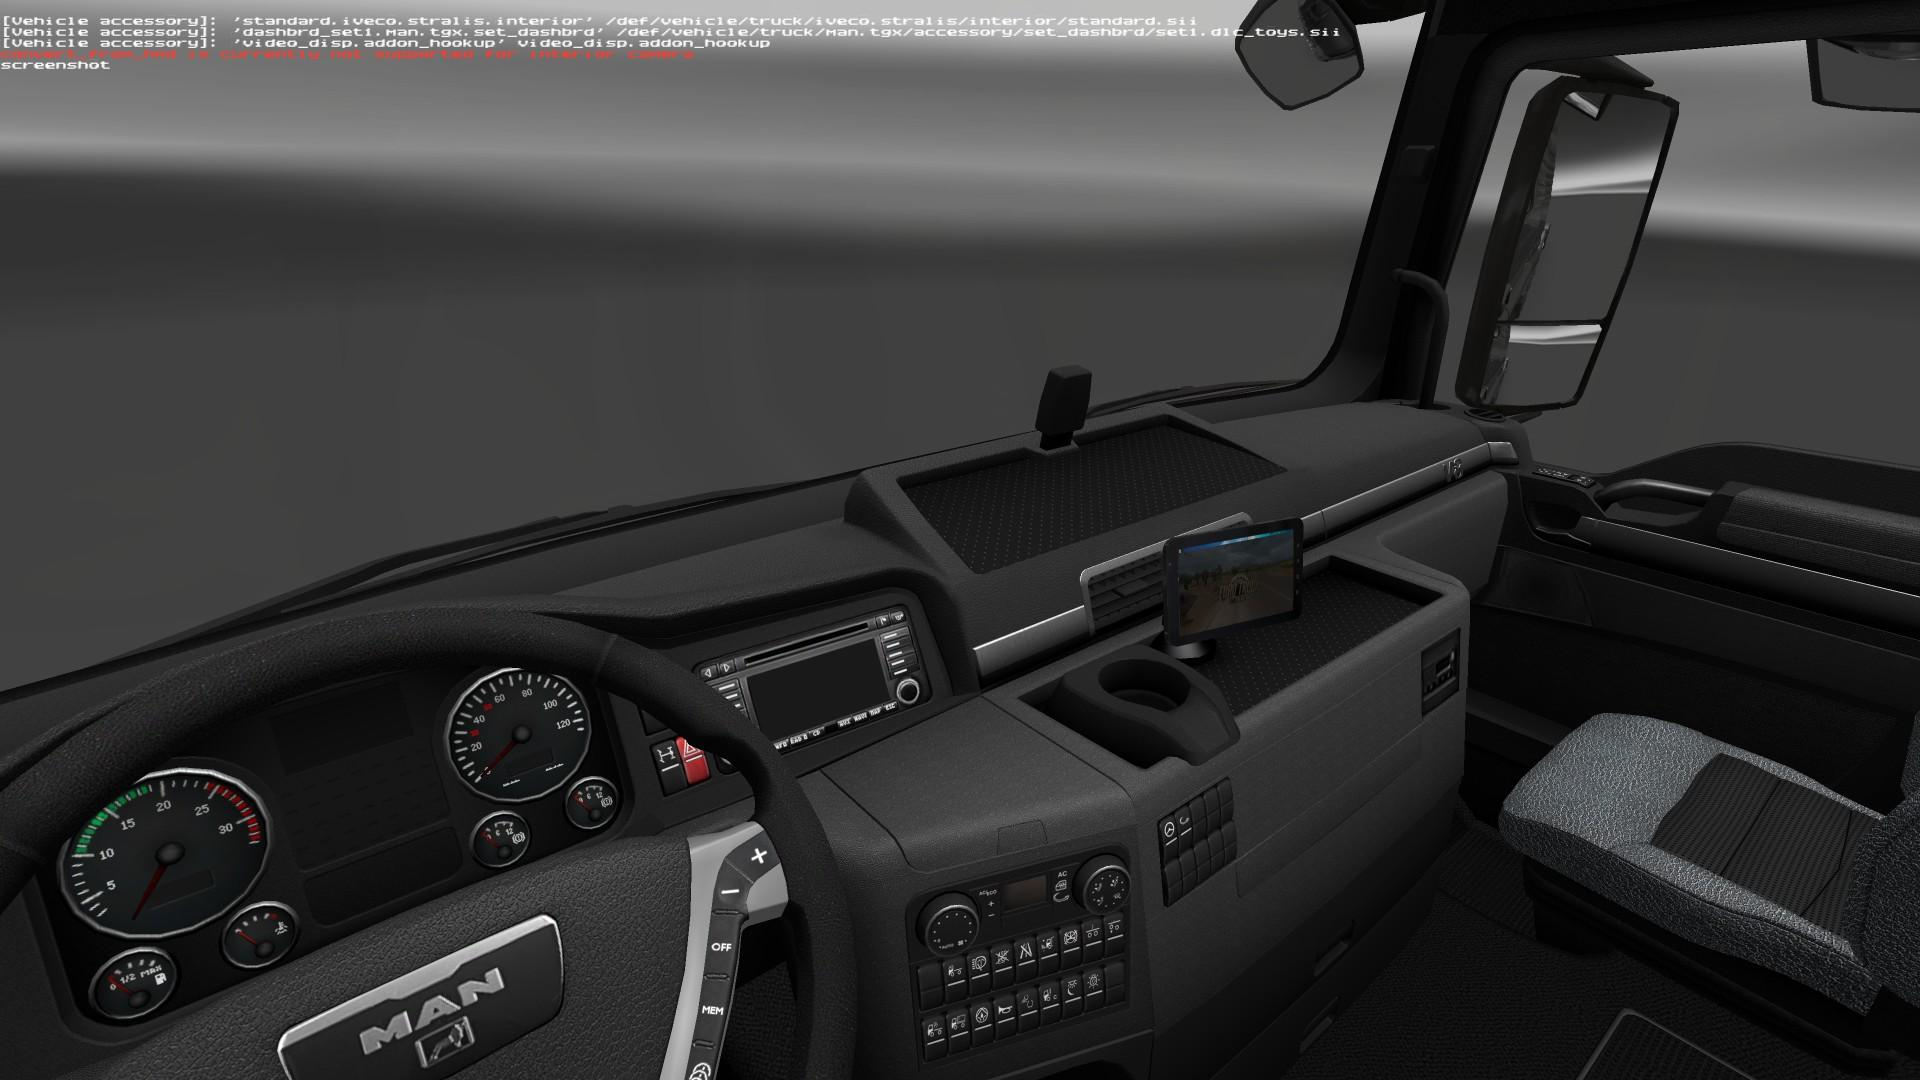 VIDEO PLAYER V0 2 4 1 TUNING MOD -Euro Truck Simulator 2 Mods